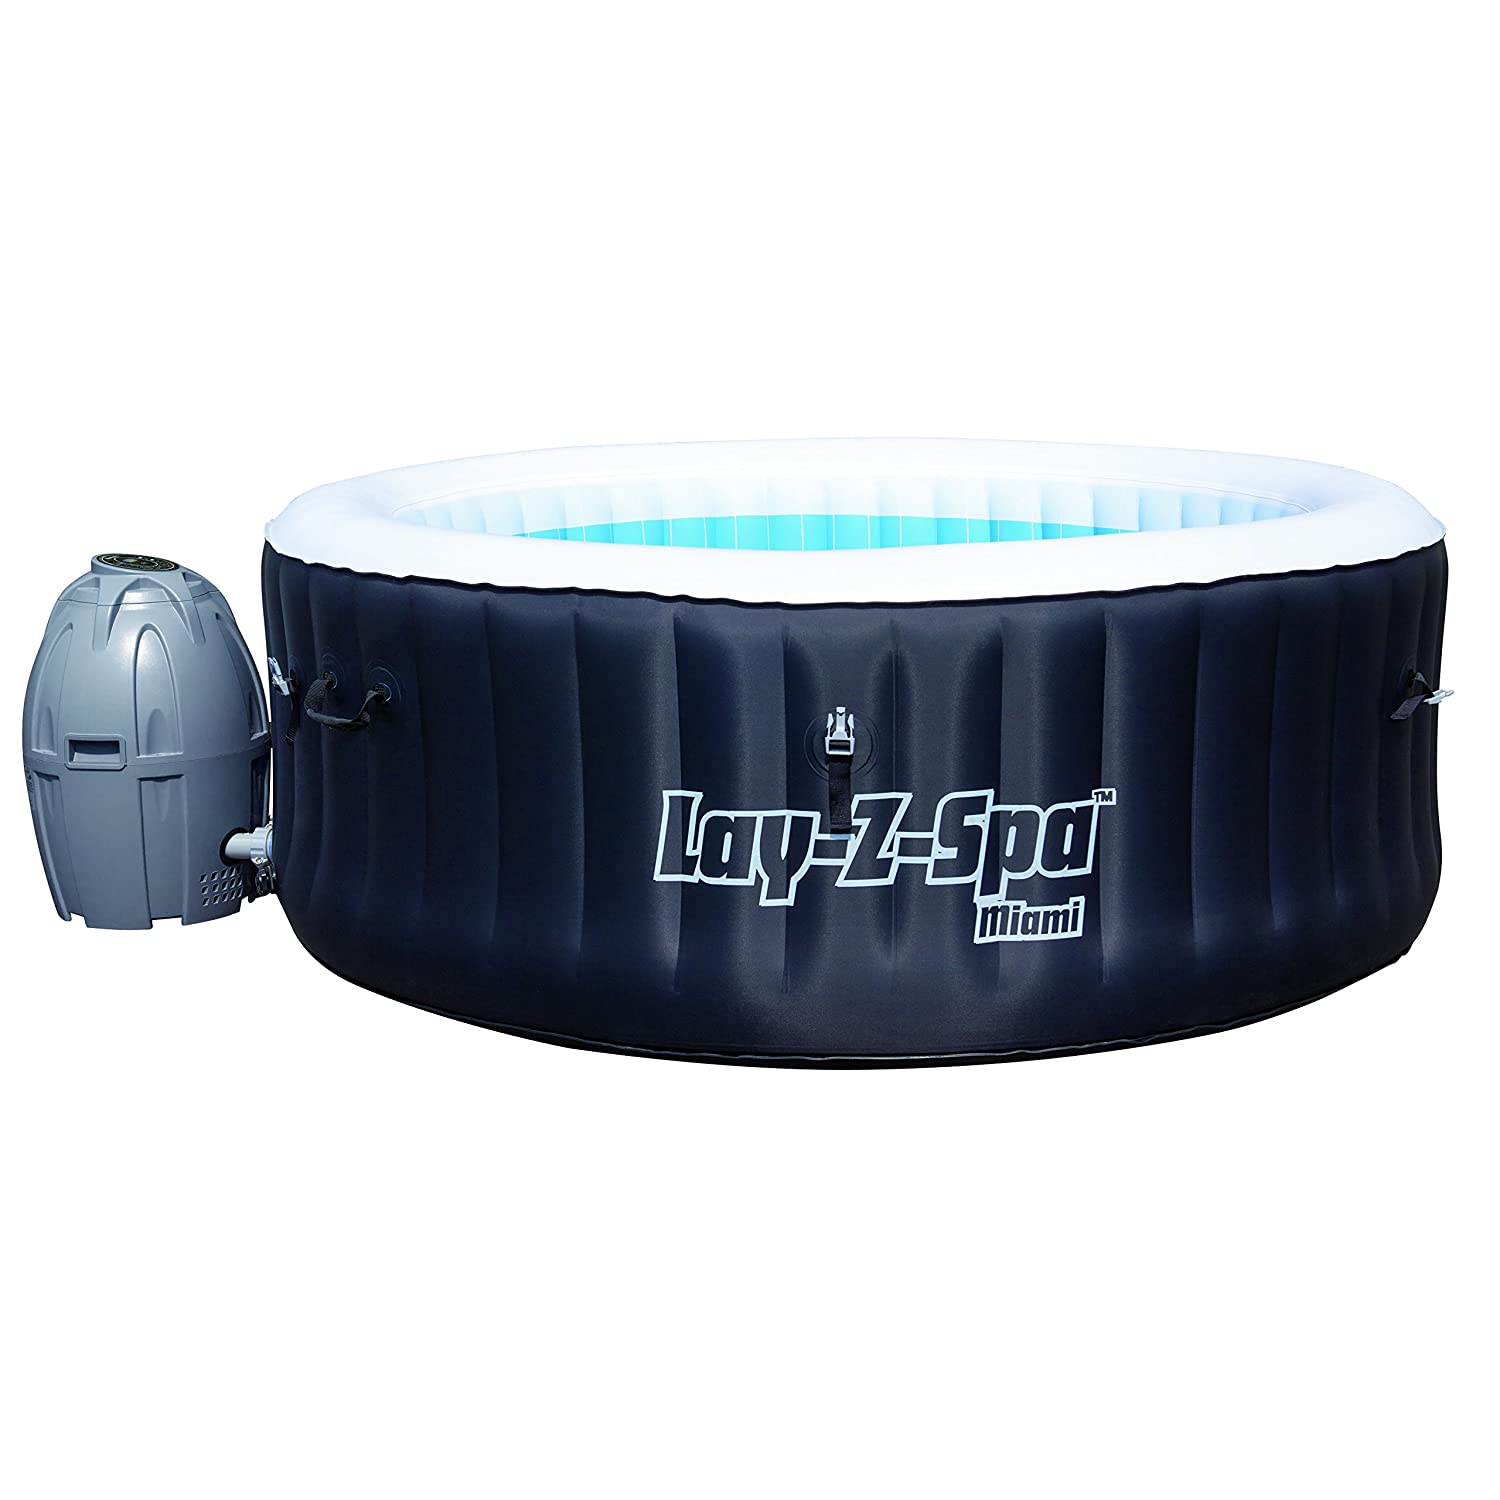 Bestway Lay-Z-Spa Miami im Test